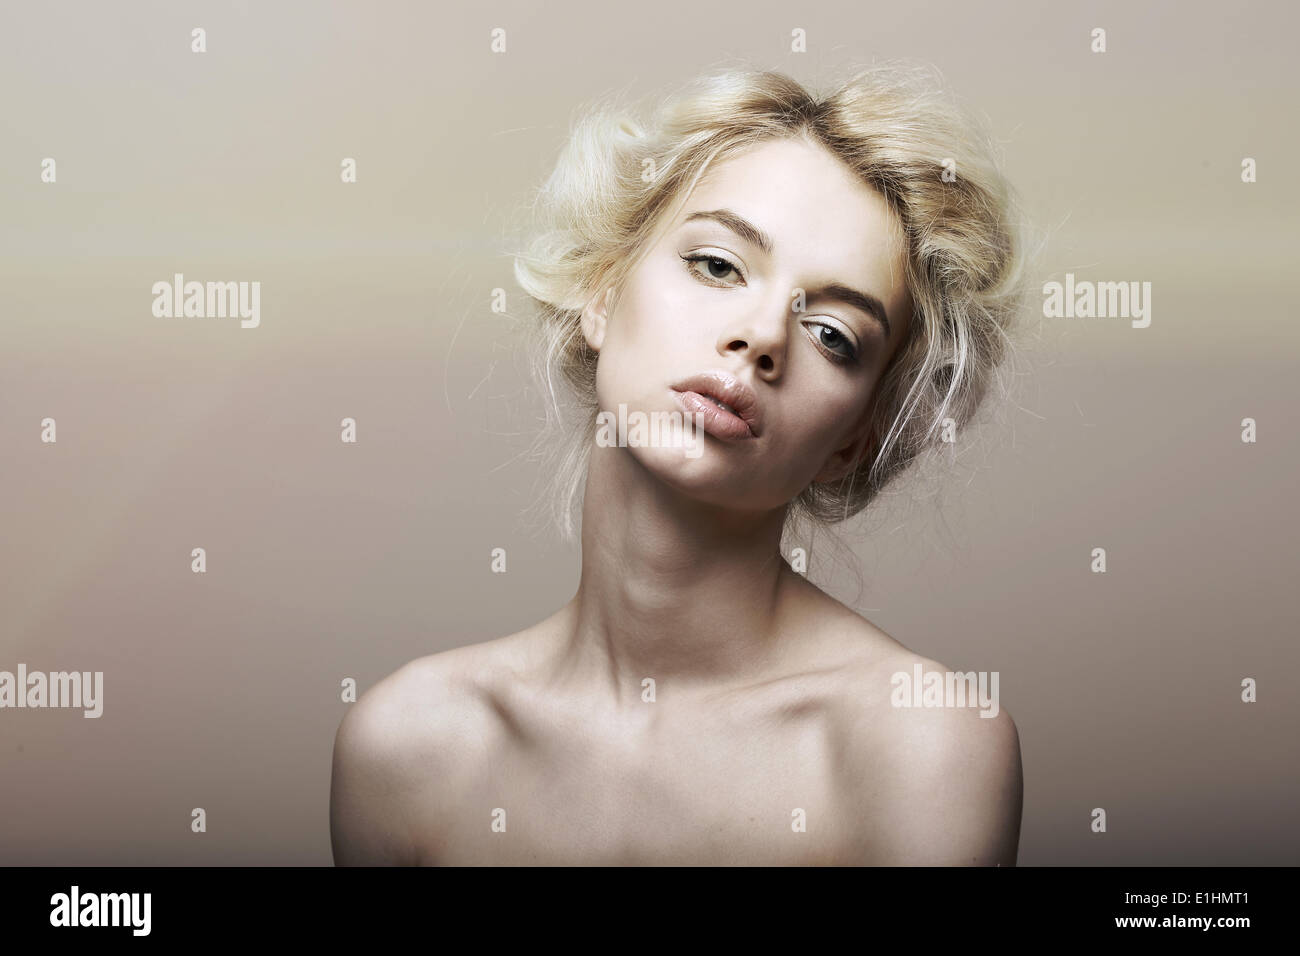 Character. Individuality. Genuine Sentimental Blond Hair Woman Dreaming - Stock Image